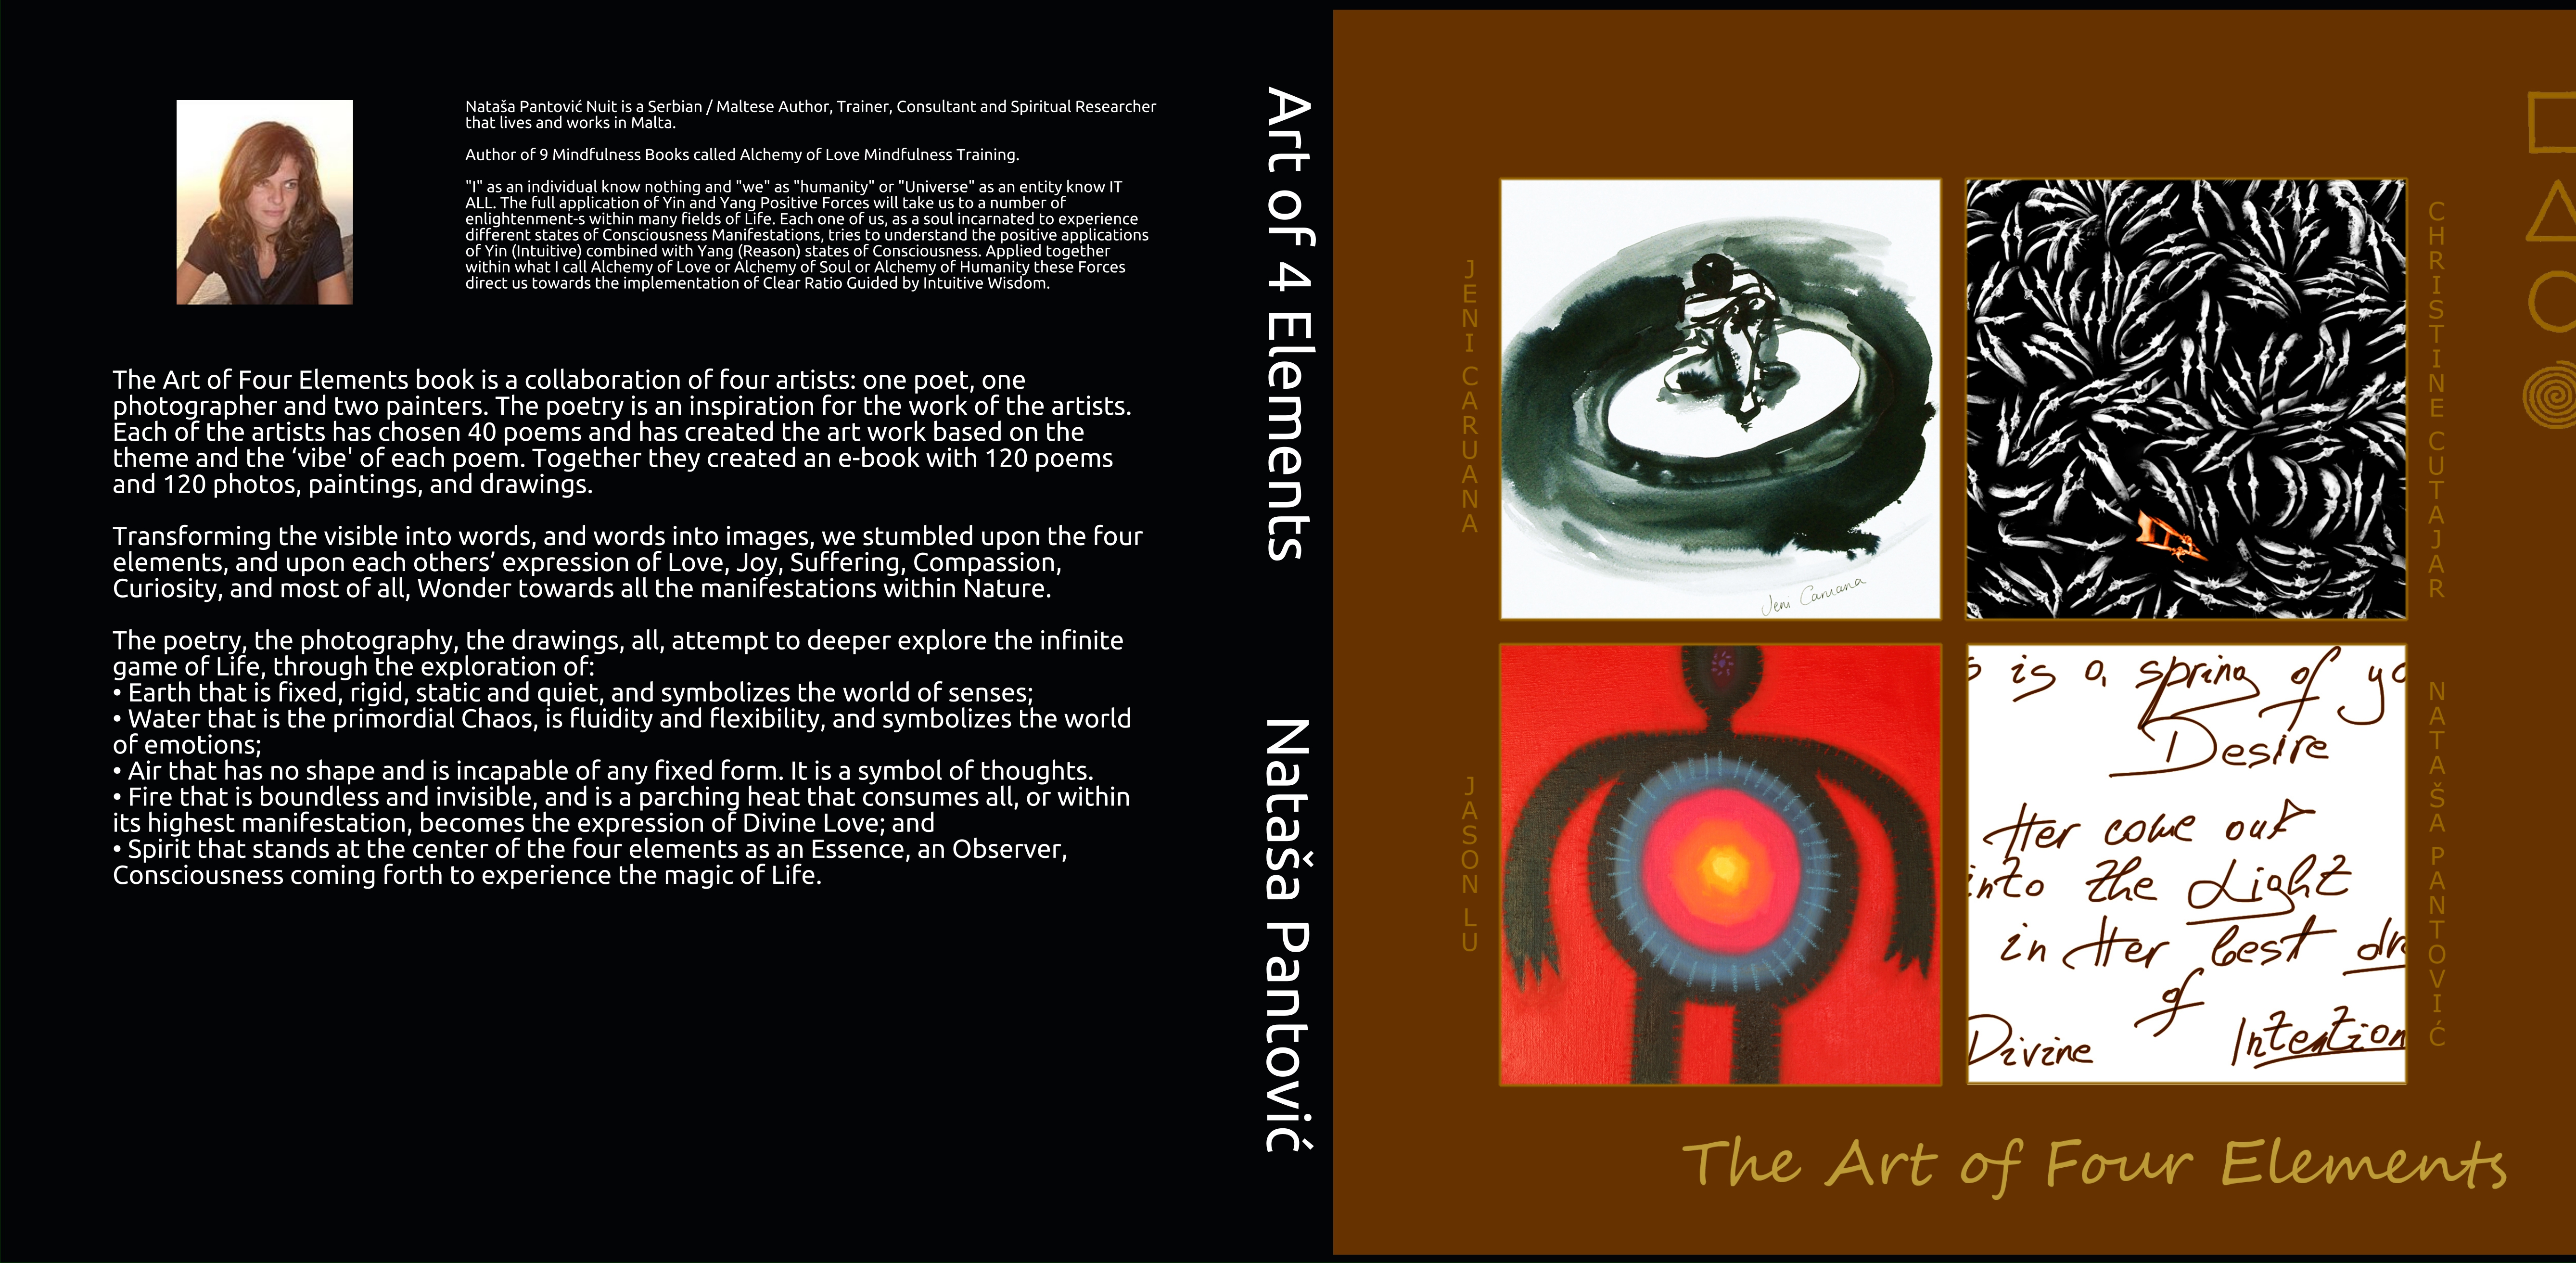 Art of 4 Elements book cover black and white interior printed 2019